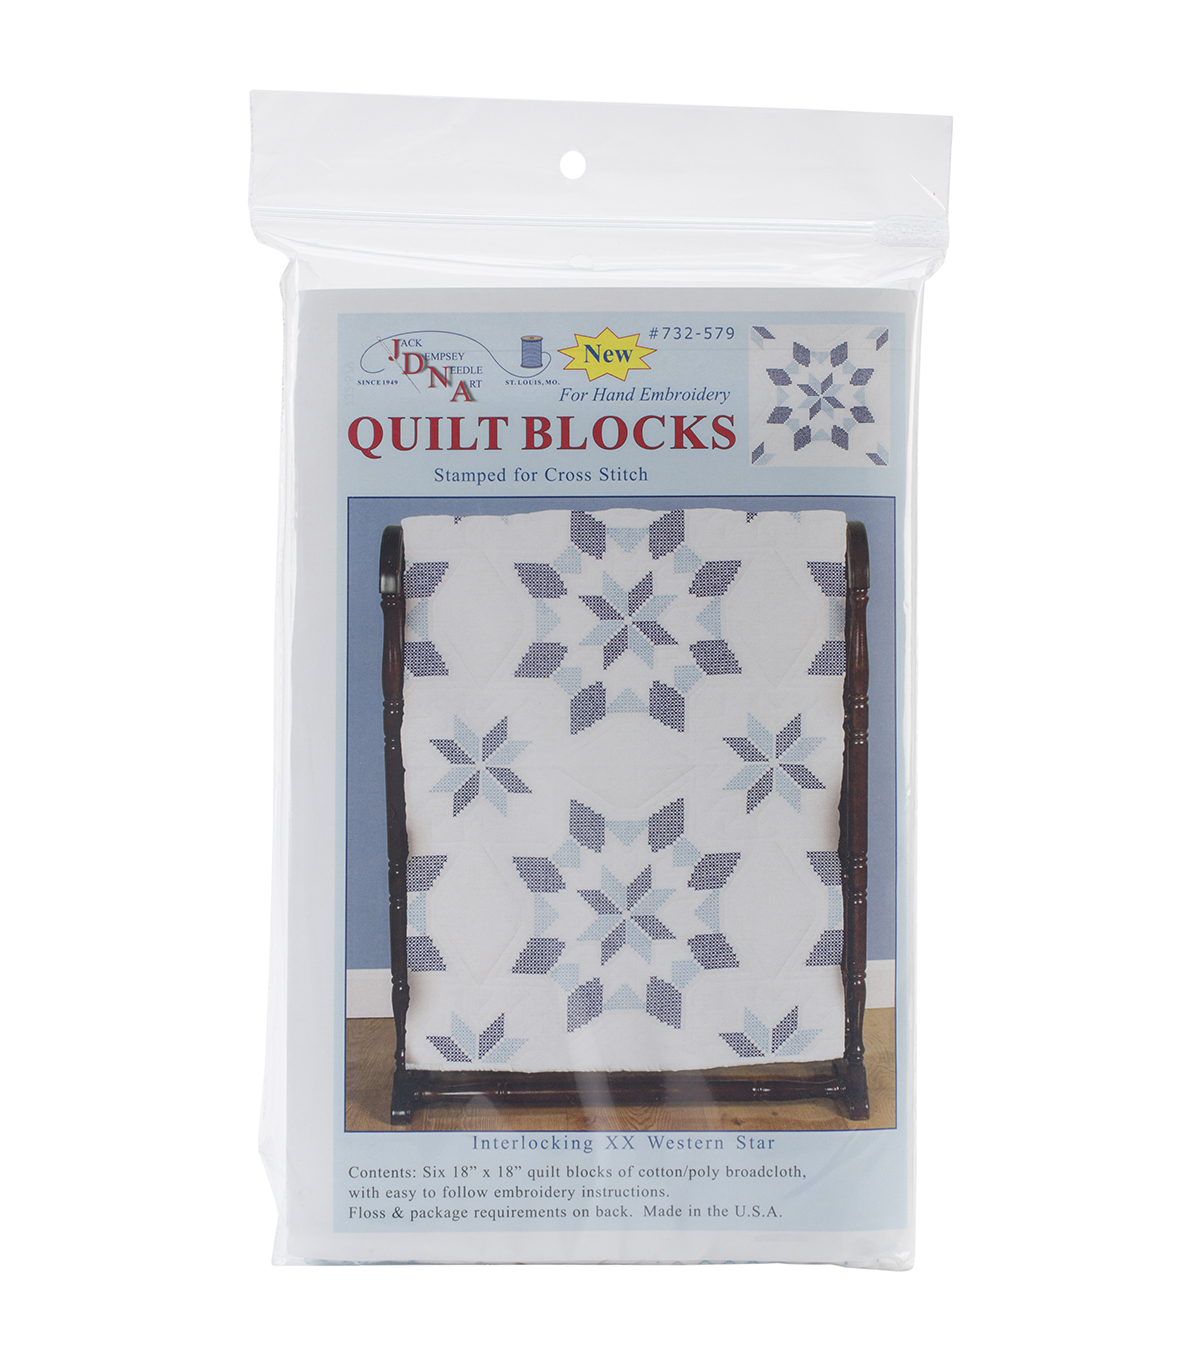 Jack Dempsey Interlocking XX Western Star Stamped Quilt Blocks